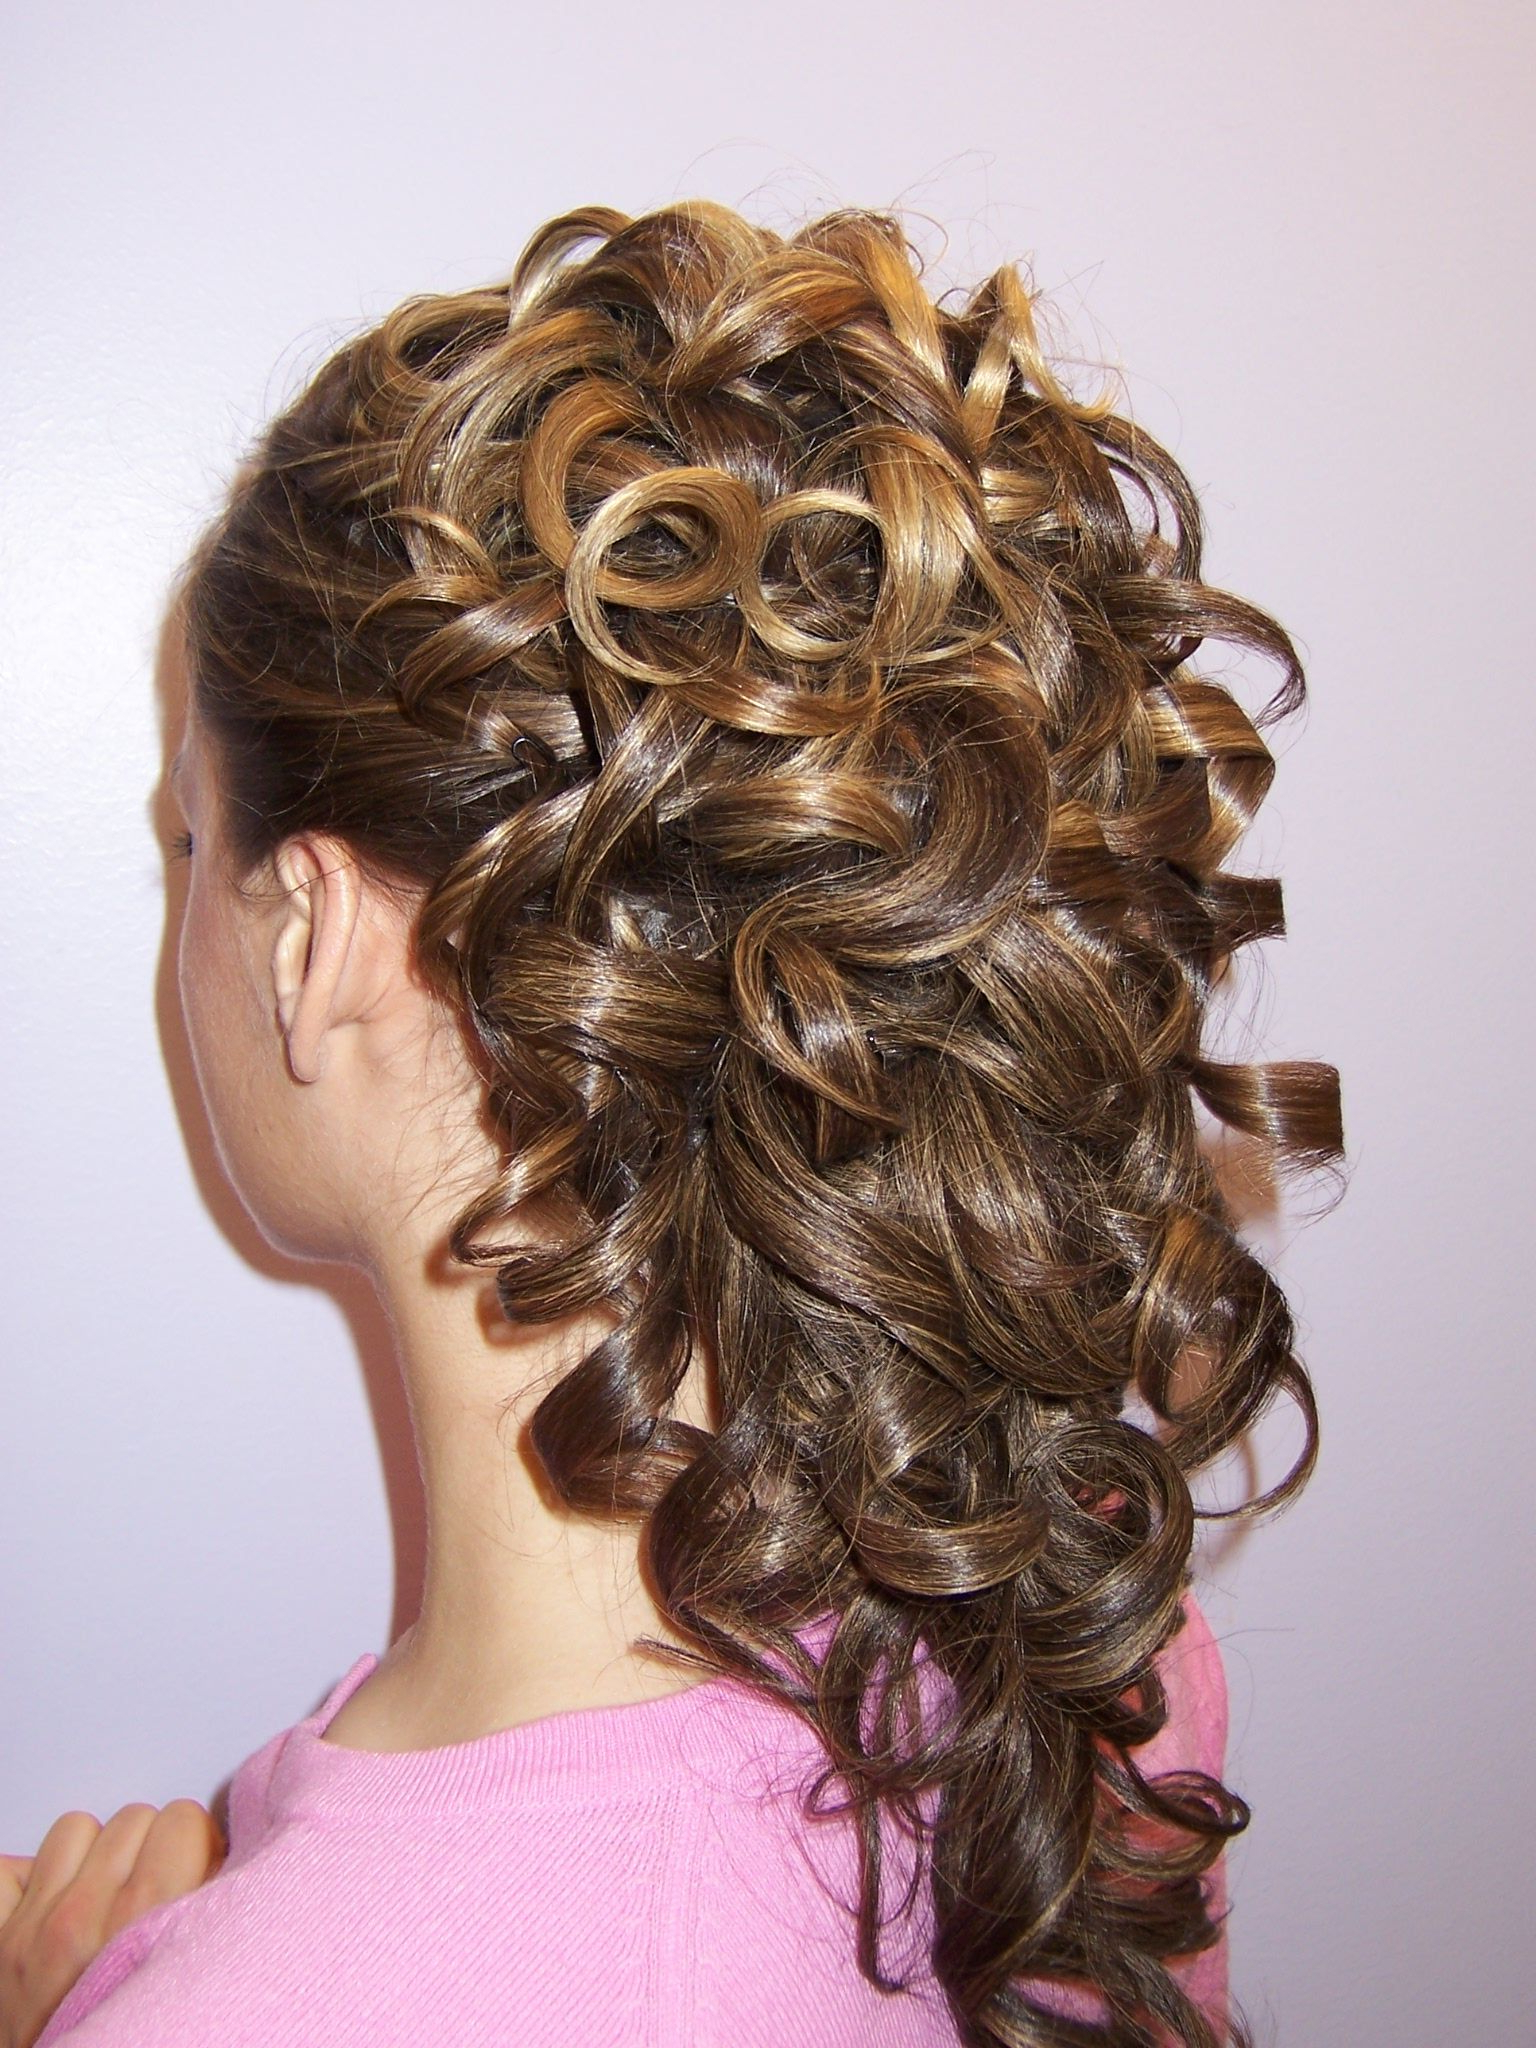 Hair & Beauty That I Love In Preferred Fabulous Cascade Of Loose Curls Bridal Hairstyles (View 4 of 20)